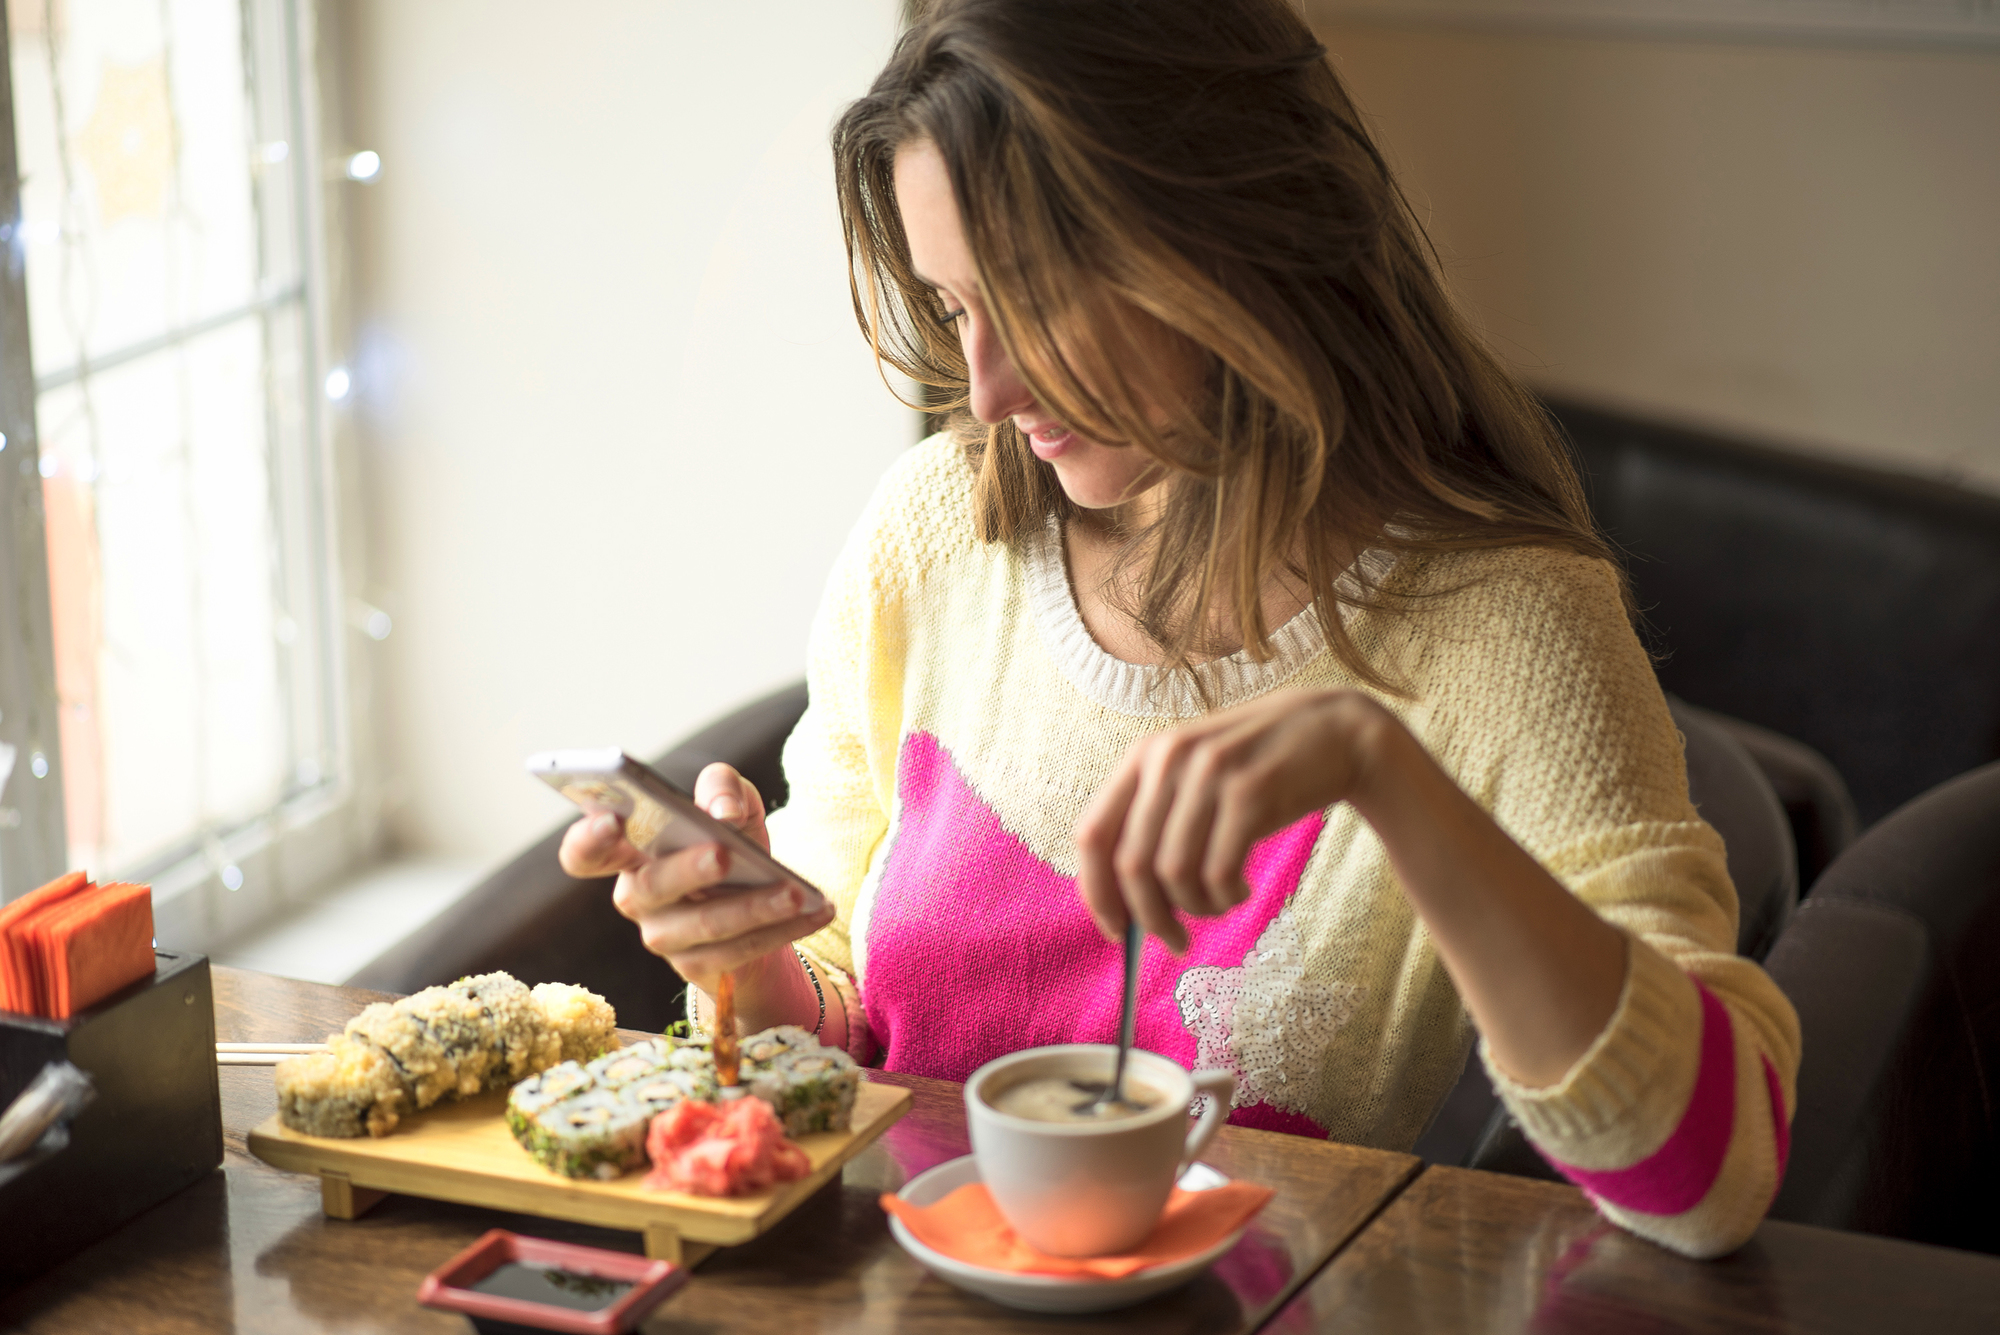 Young business woman eating sushi for lunch at a small cafe and a healthy lifestyle, working on a smartphone coffee. Happy smiling, fashionable, in a yellow sweater.